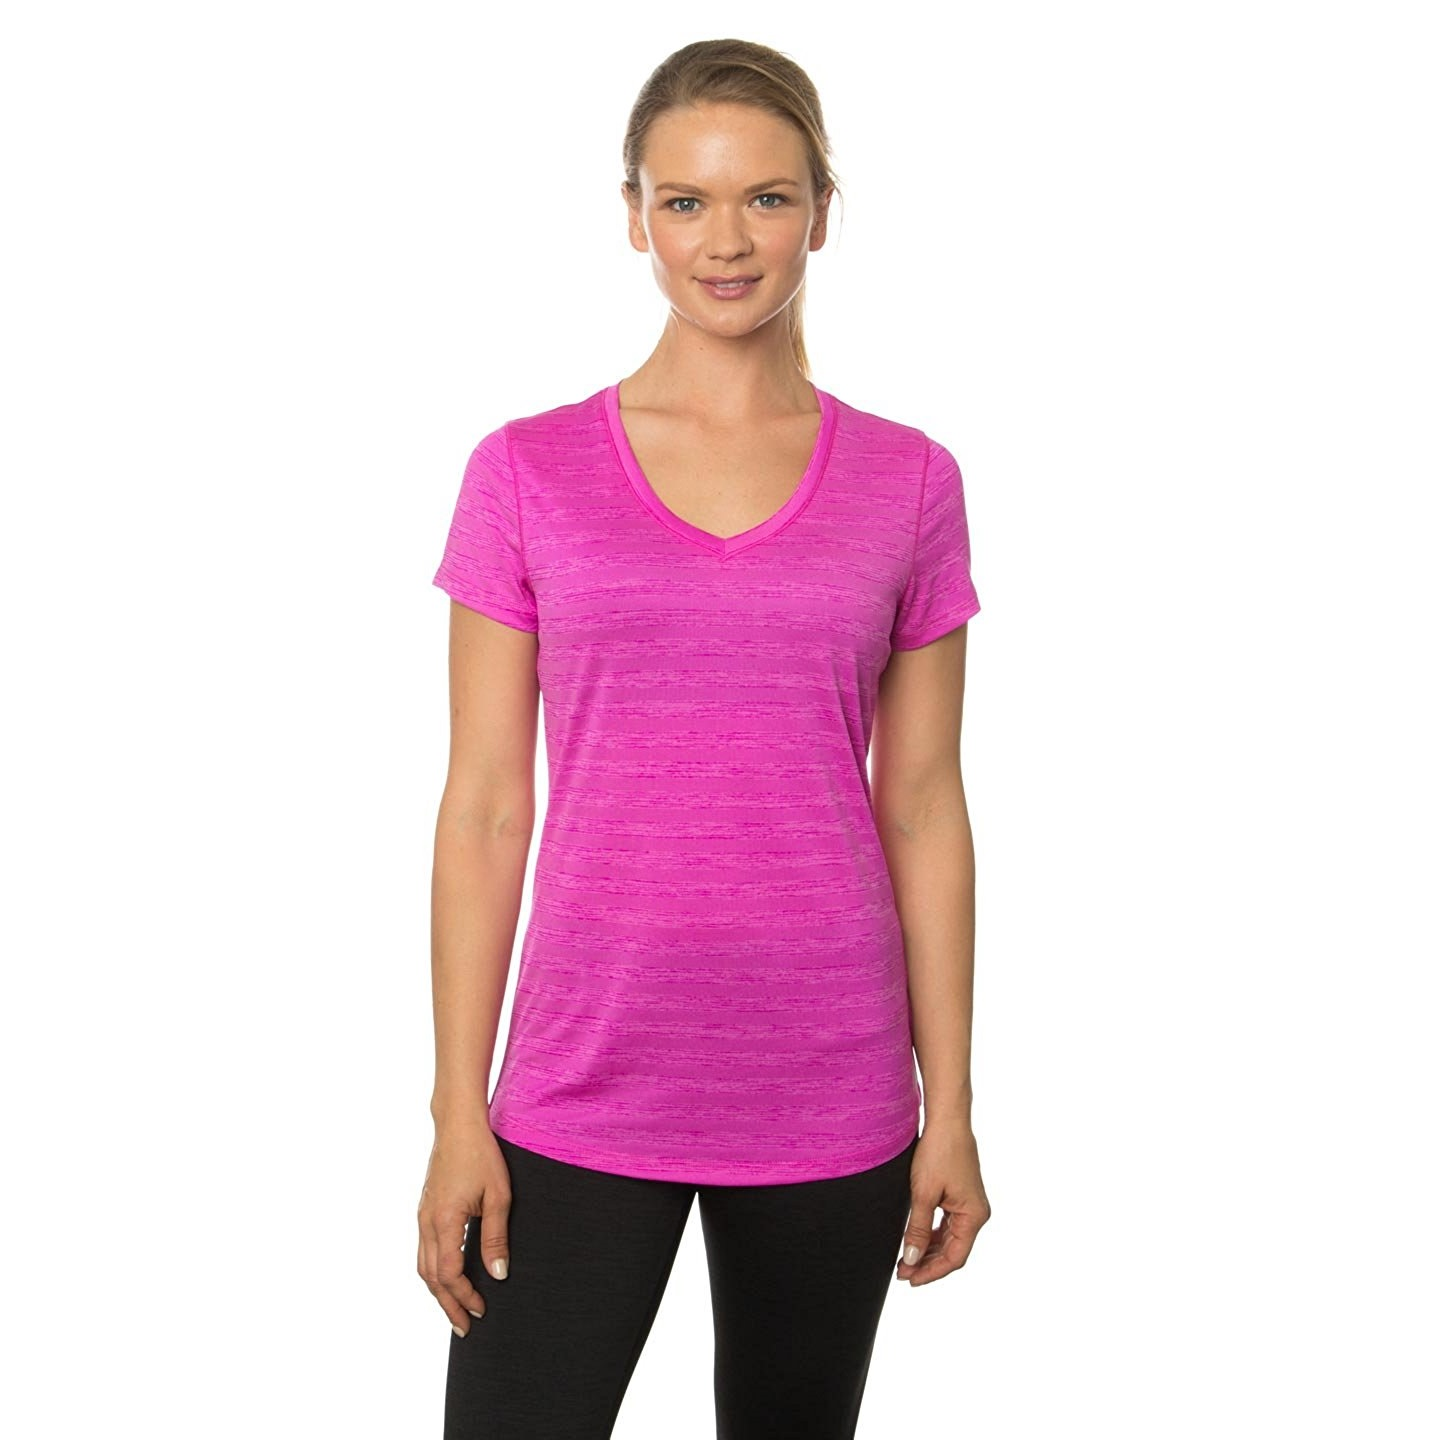 rbx womens space dye short sleeve v-neck twightlight magenta combo yoga tee shirt